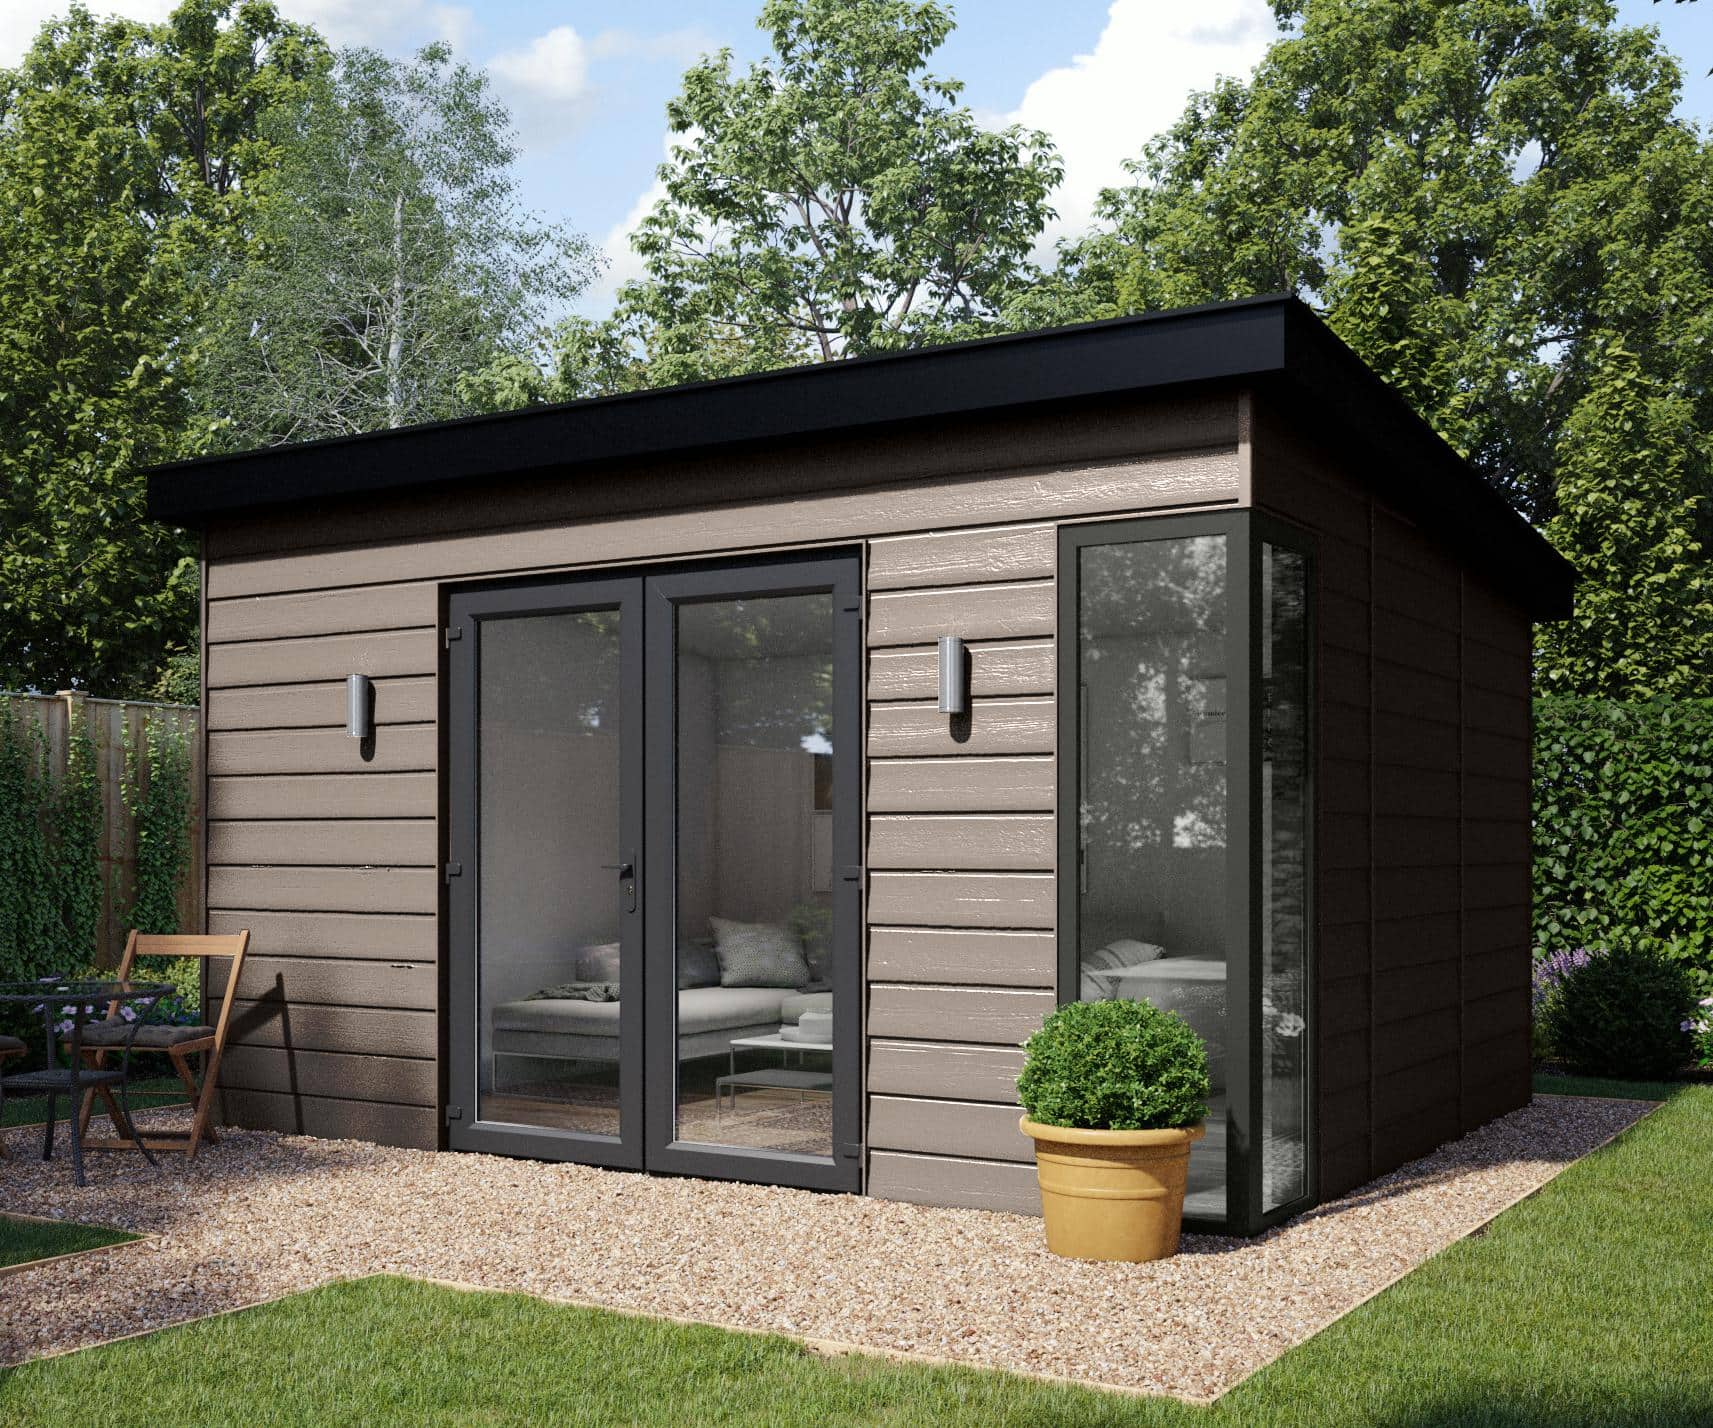 Elglaze Garden Studio brown cladding, french doors and corner window